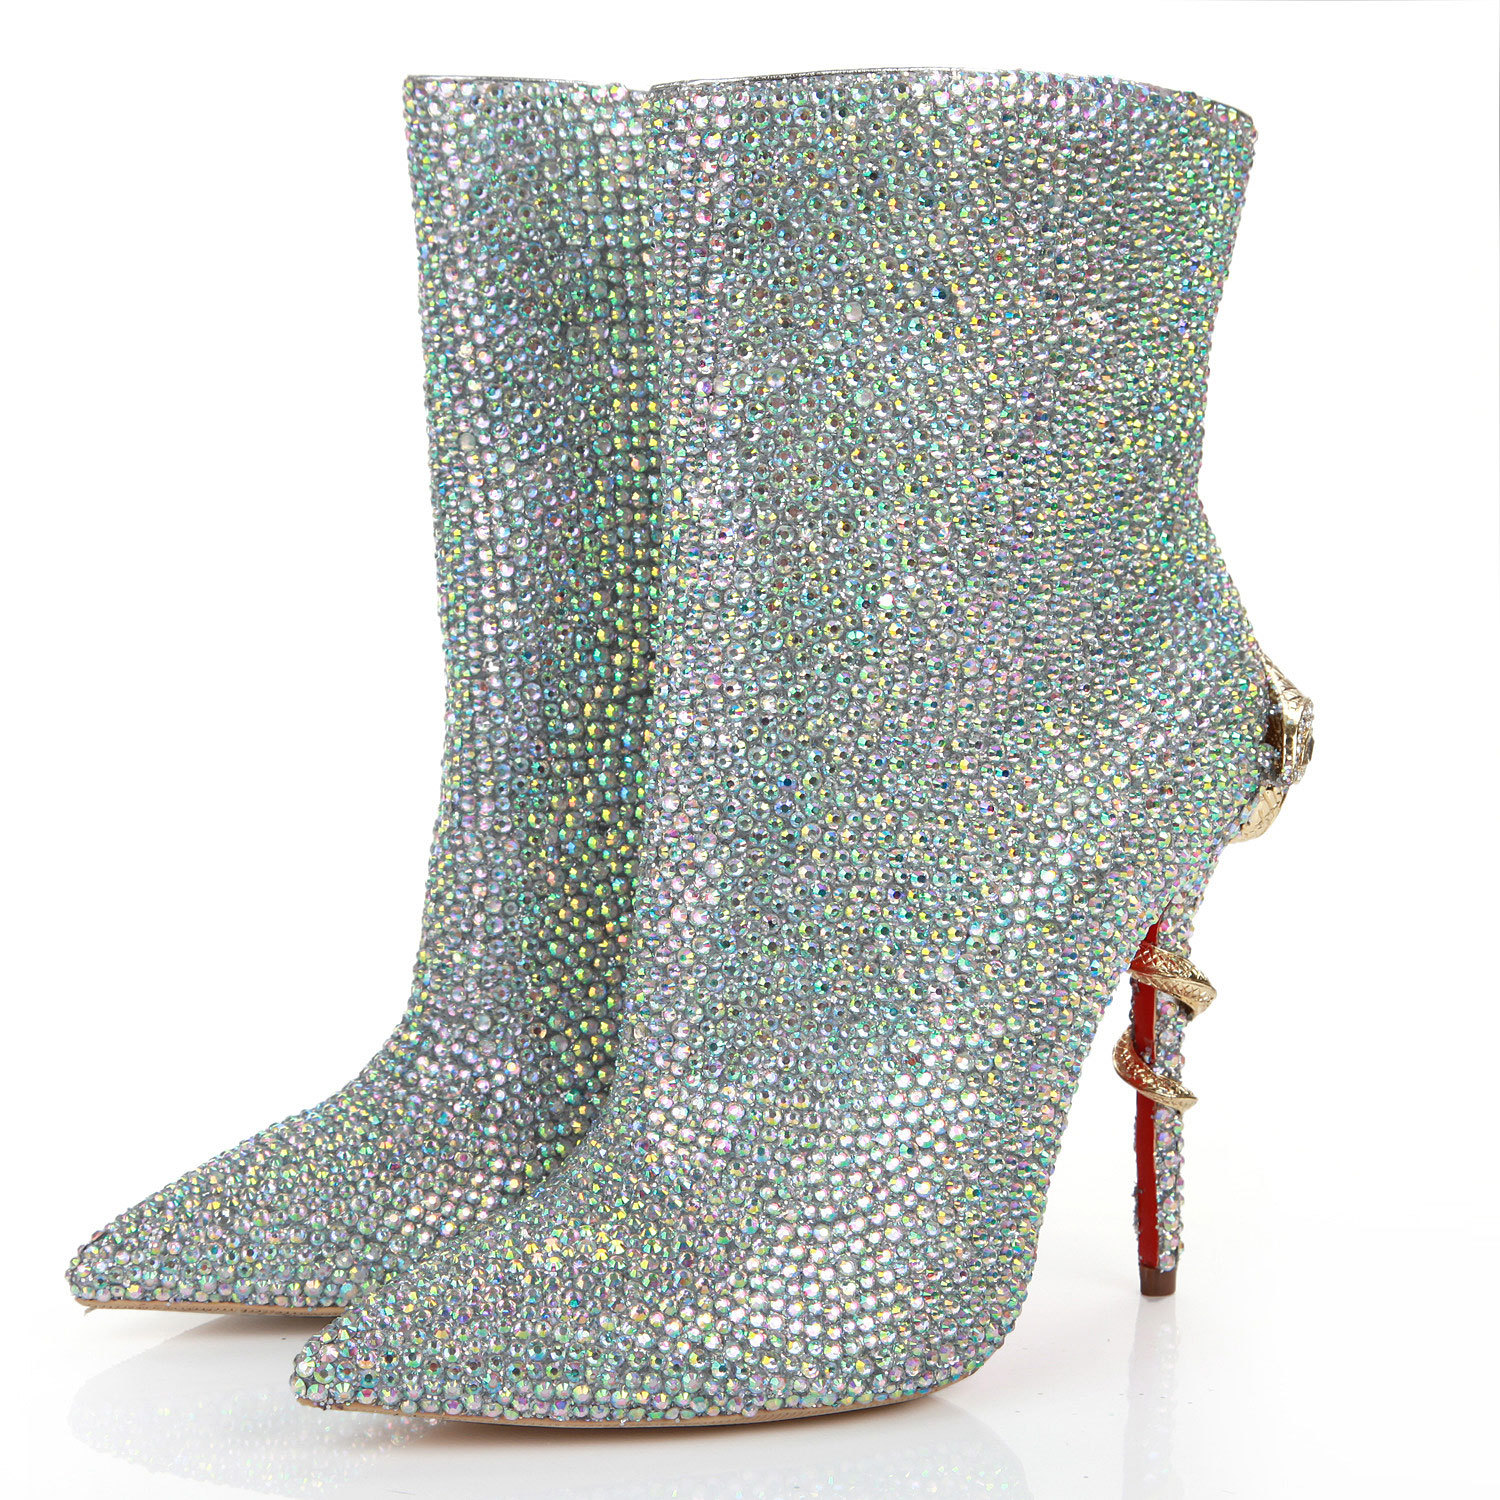 Women's Short Boots Toe Crystal Short Boots Rhinestone Ladies Pumps Bridal Wedding Cocktail Shoes Snake Shaped Metal Decoration-BeeInFly